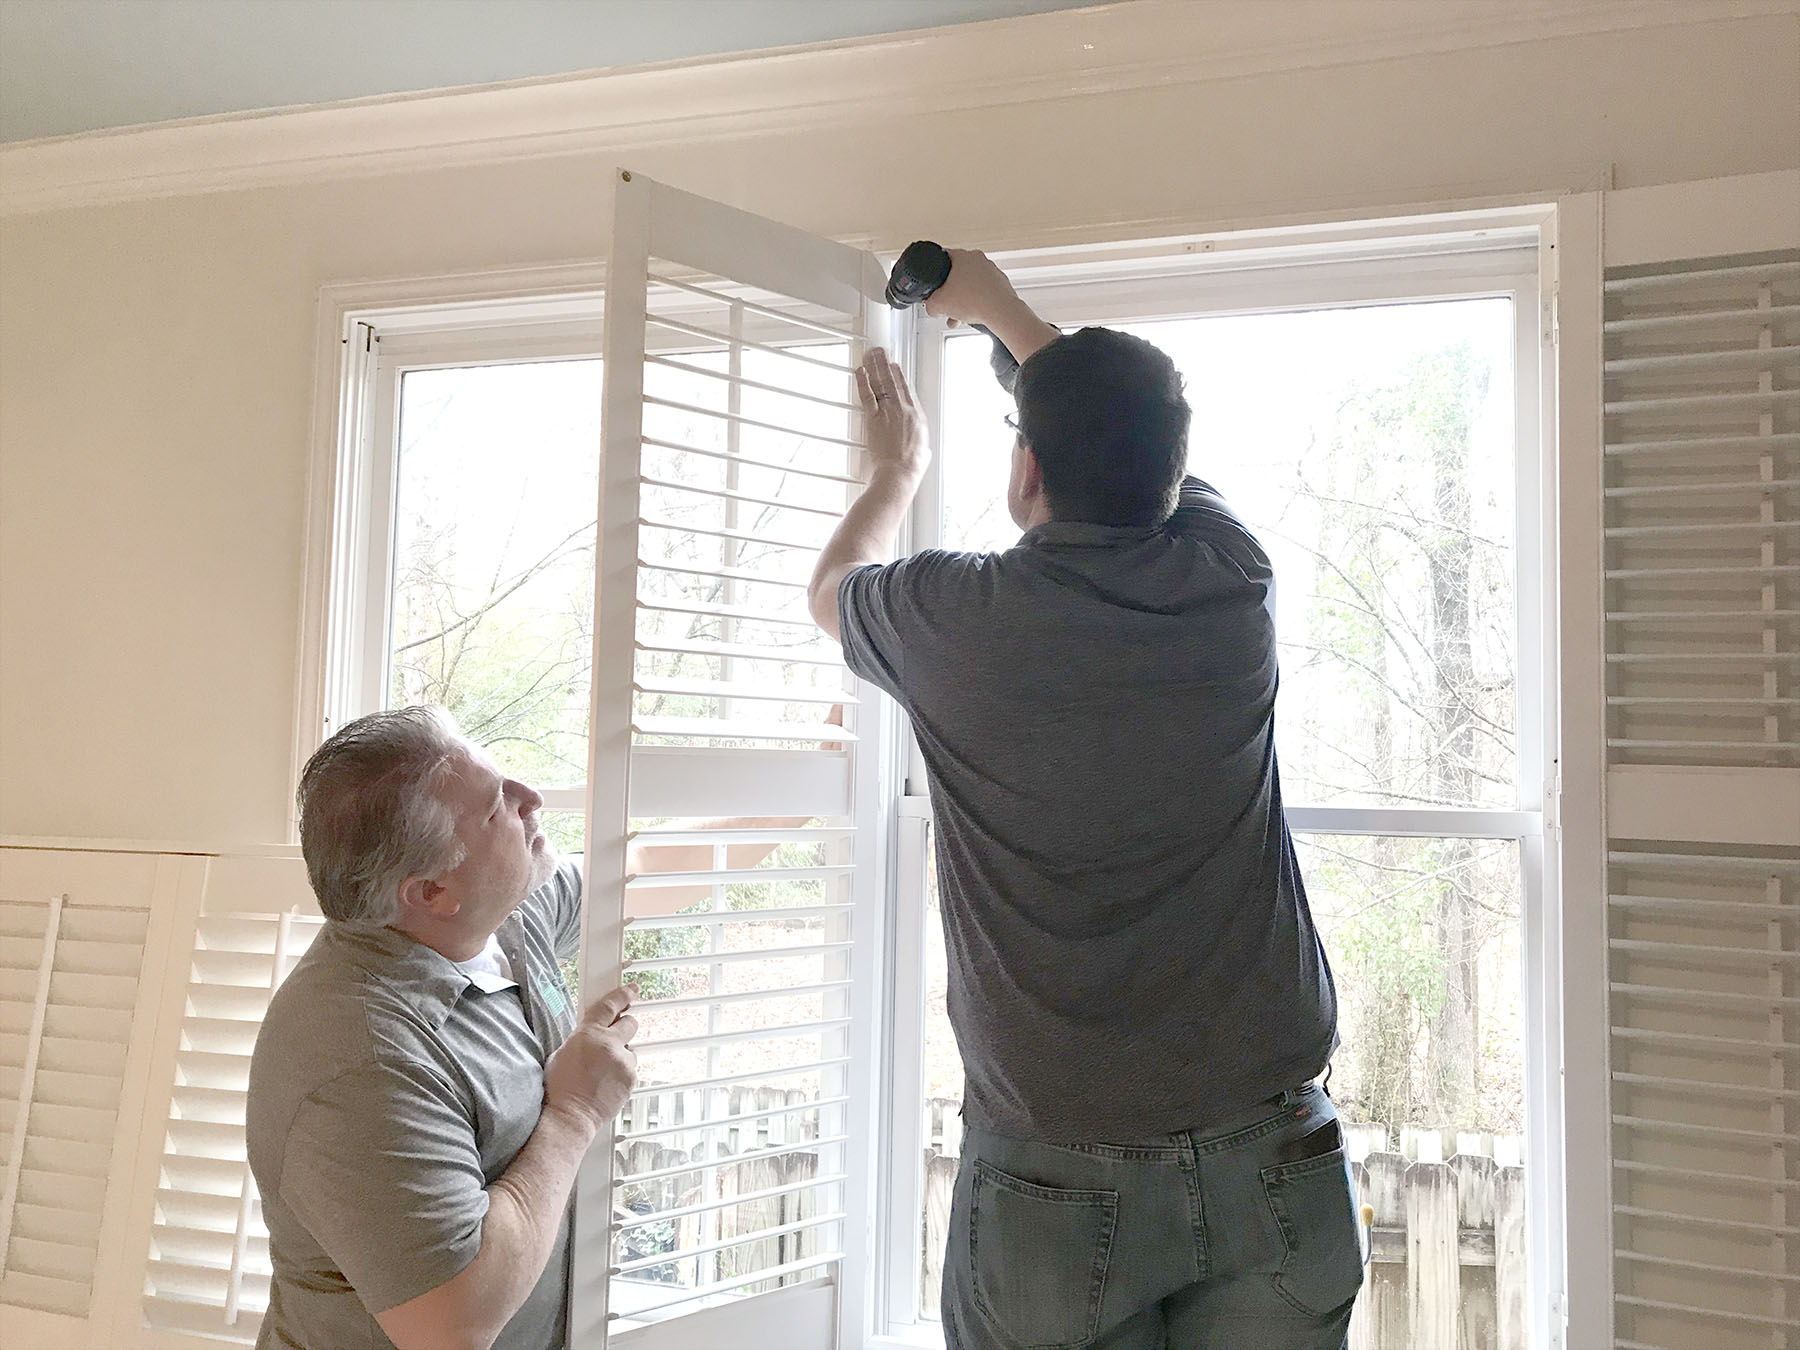 Custom Blinds Crew Removing Shutters for Painting